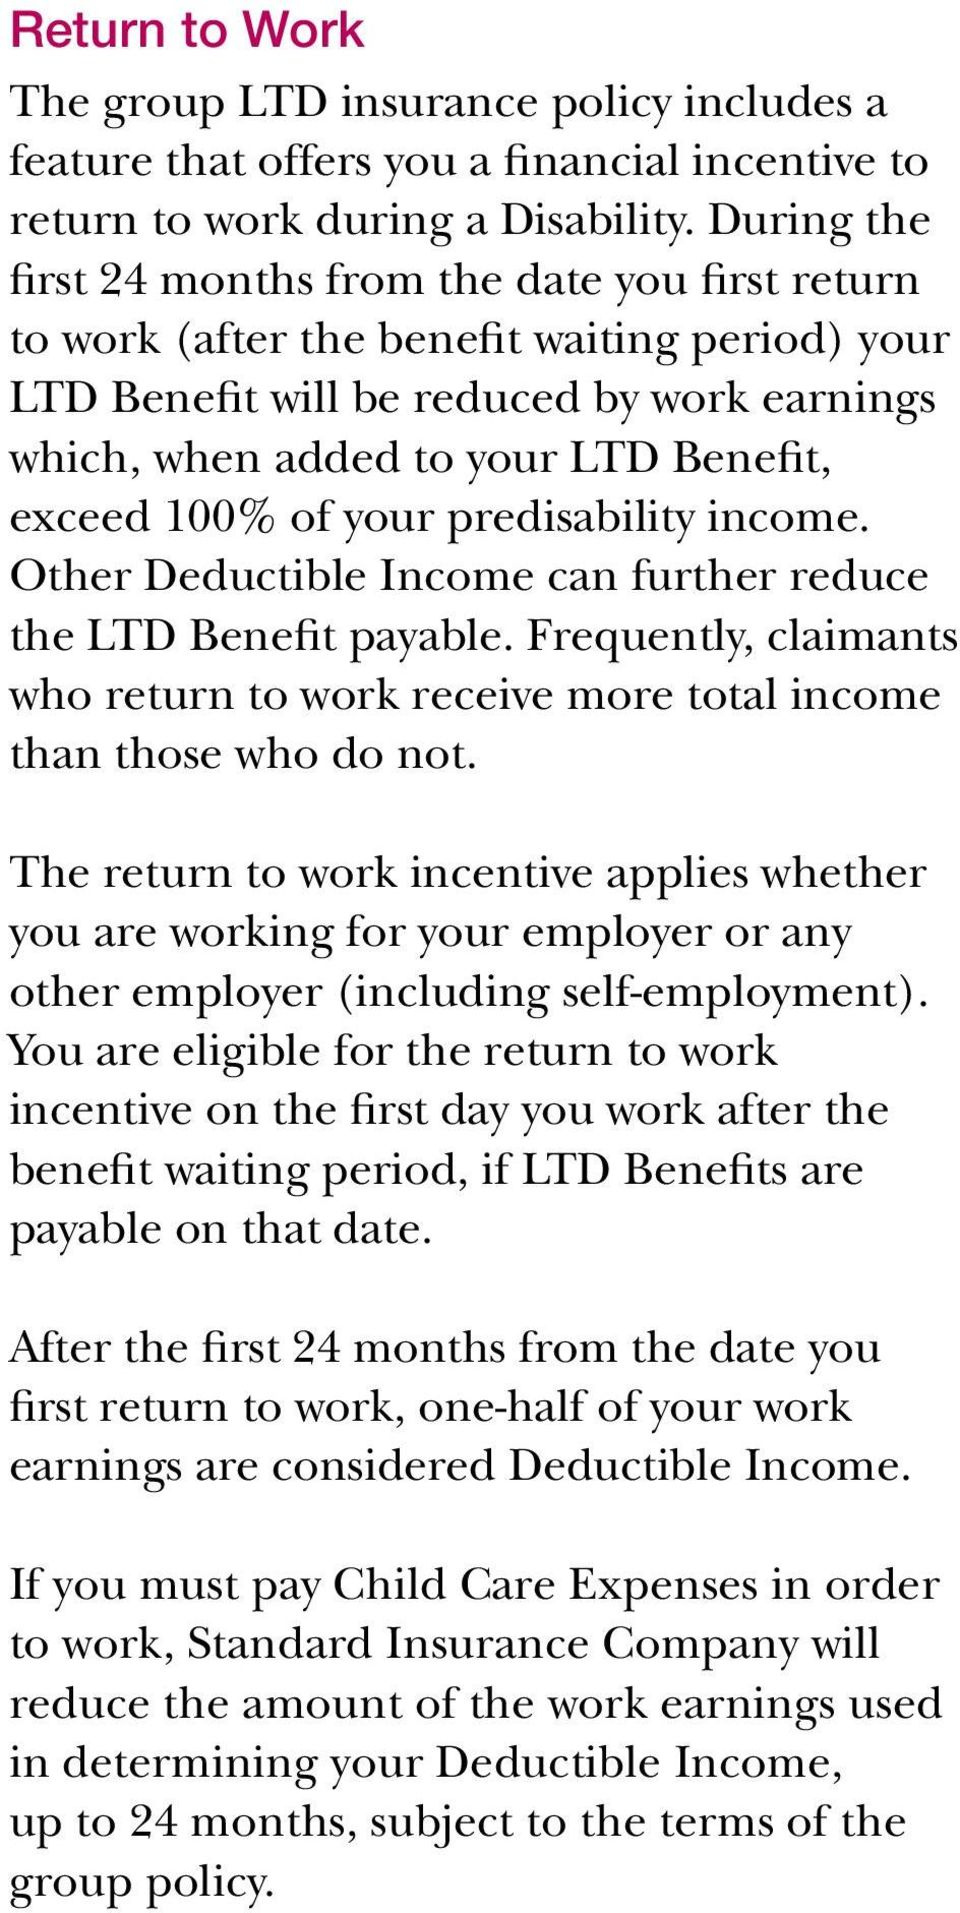 100% of your predisability income. Other Deductible Income can further reduce the LTD Benefit payable. Frequently, claimants who return to work receive more total income than those who do not.